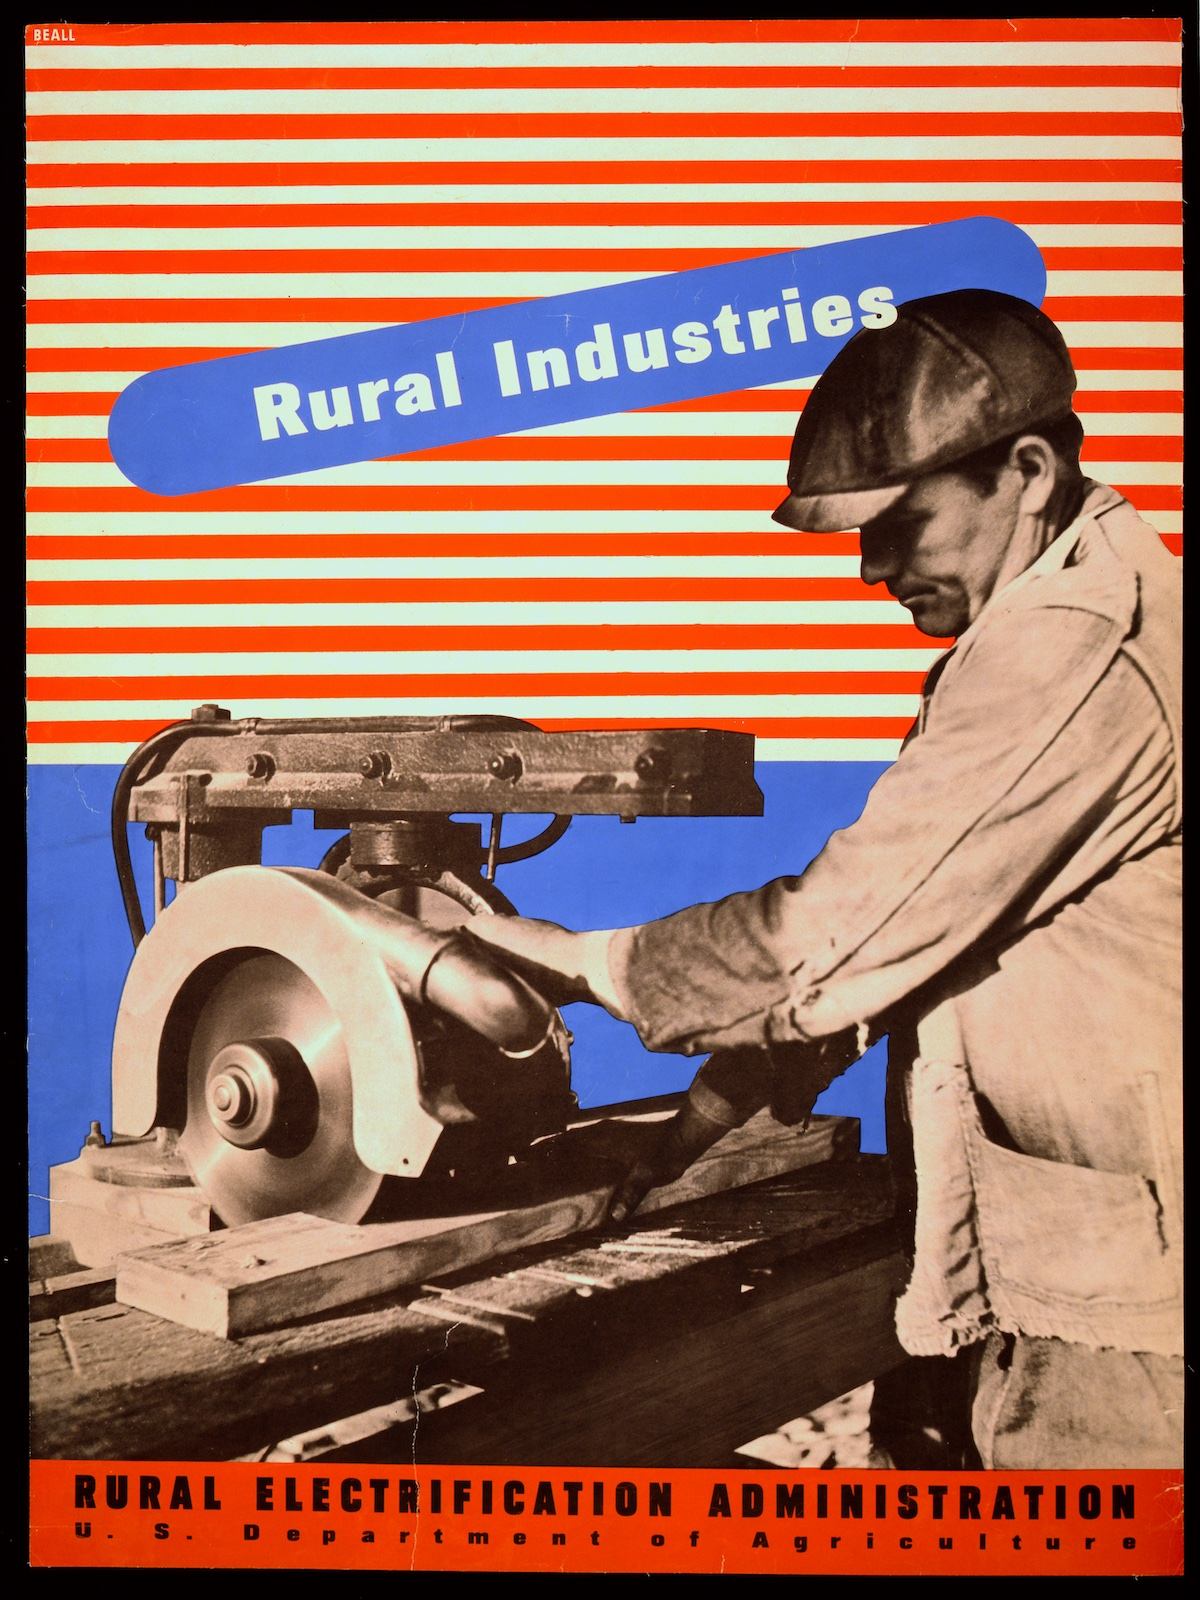 'Rural industries' Rural Electrification poster by Lester Beall - 1930